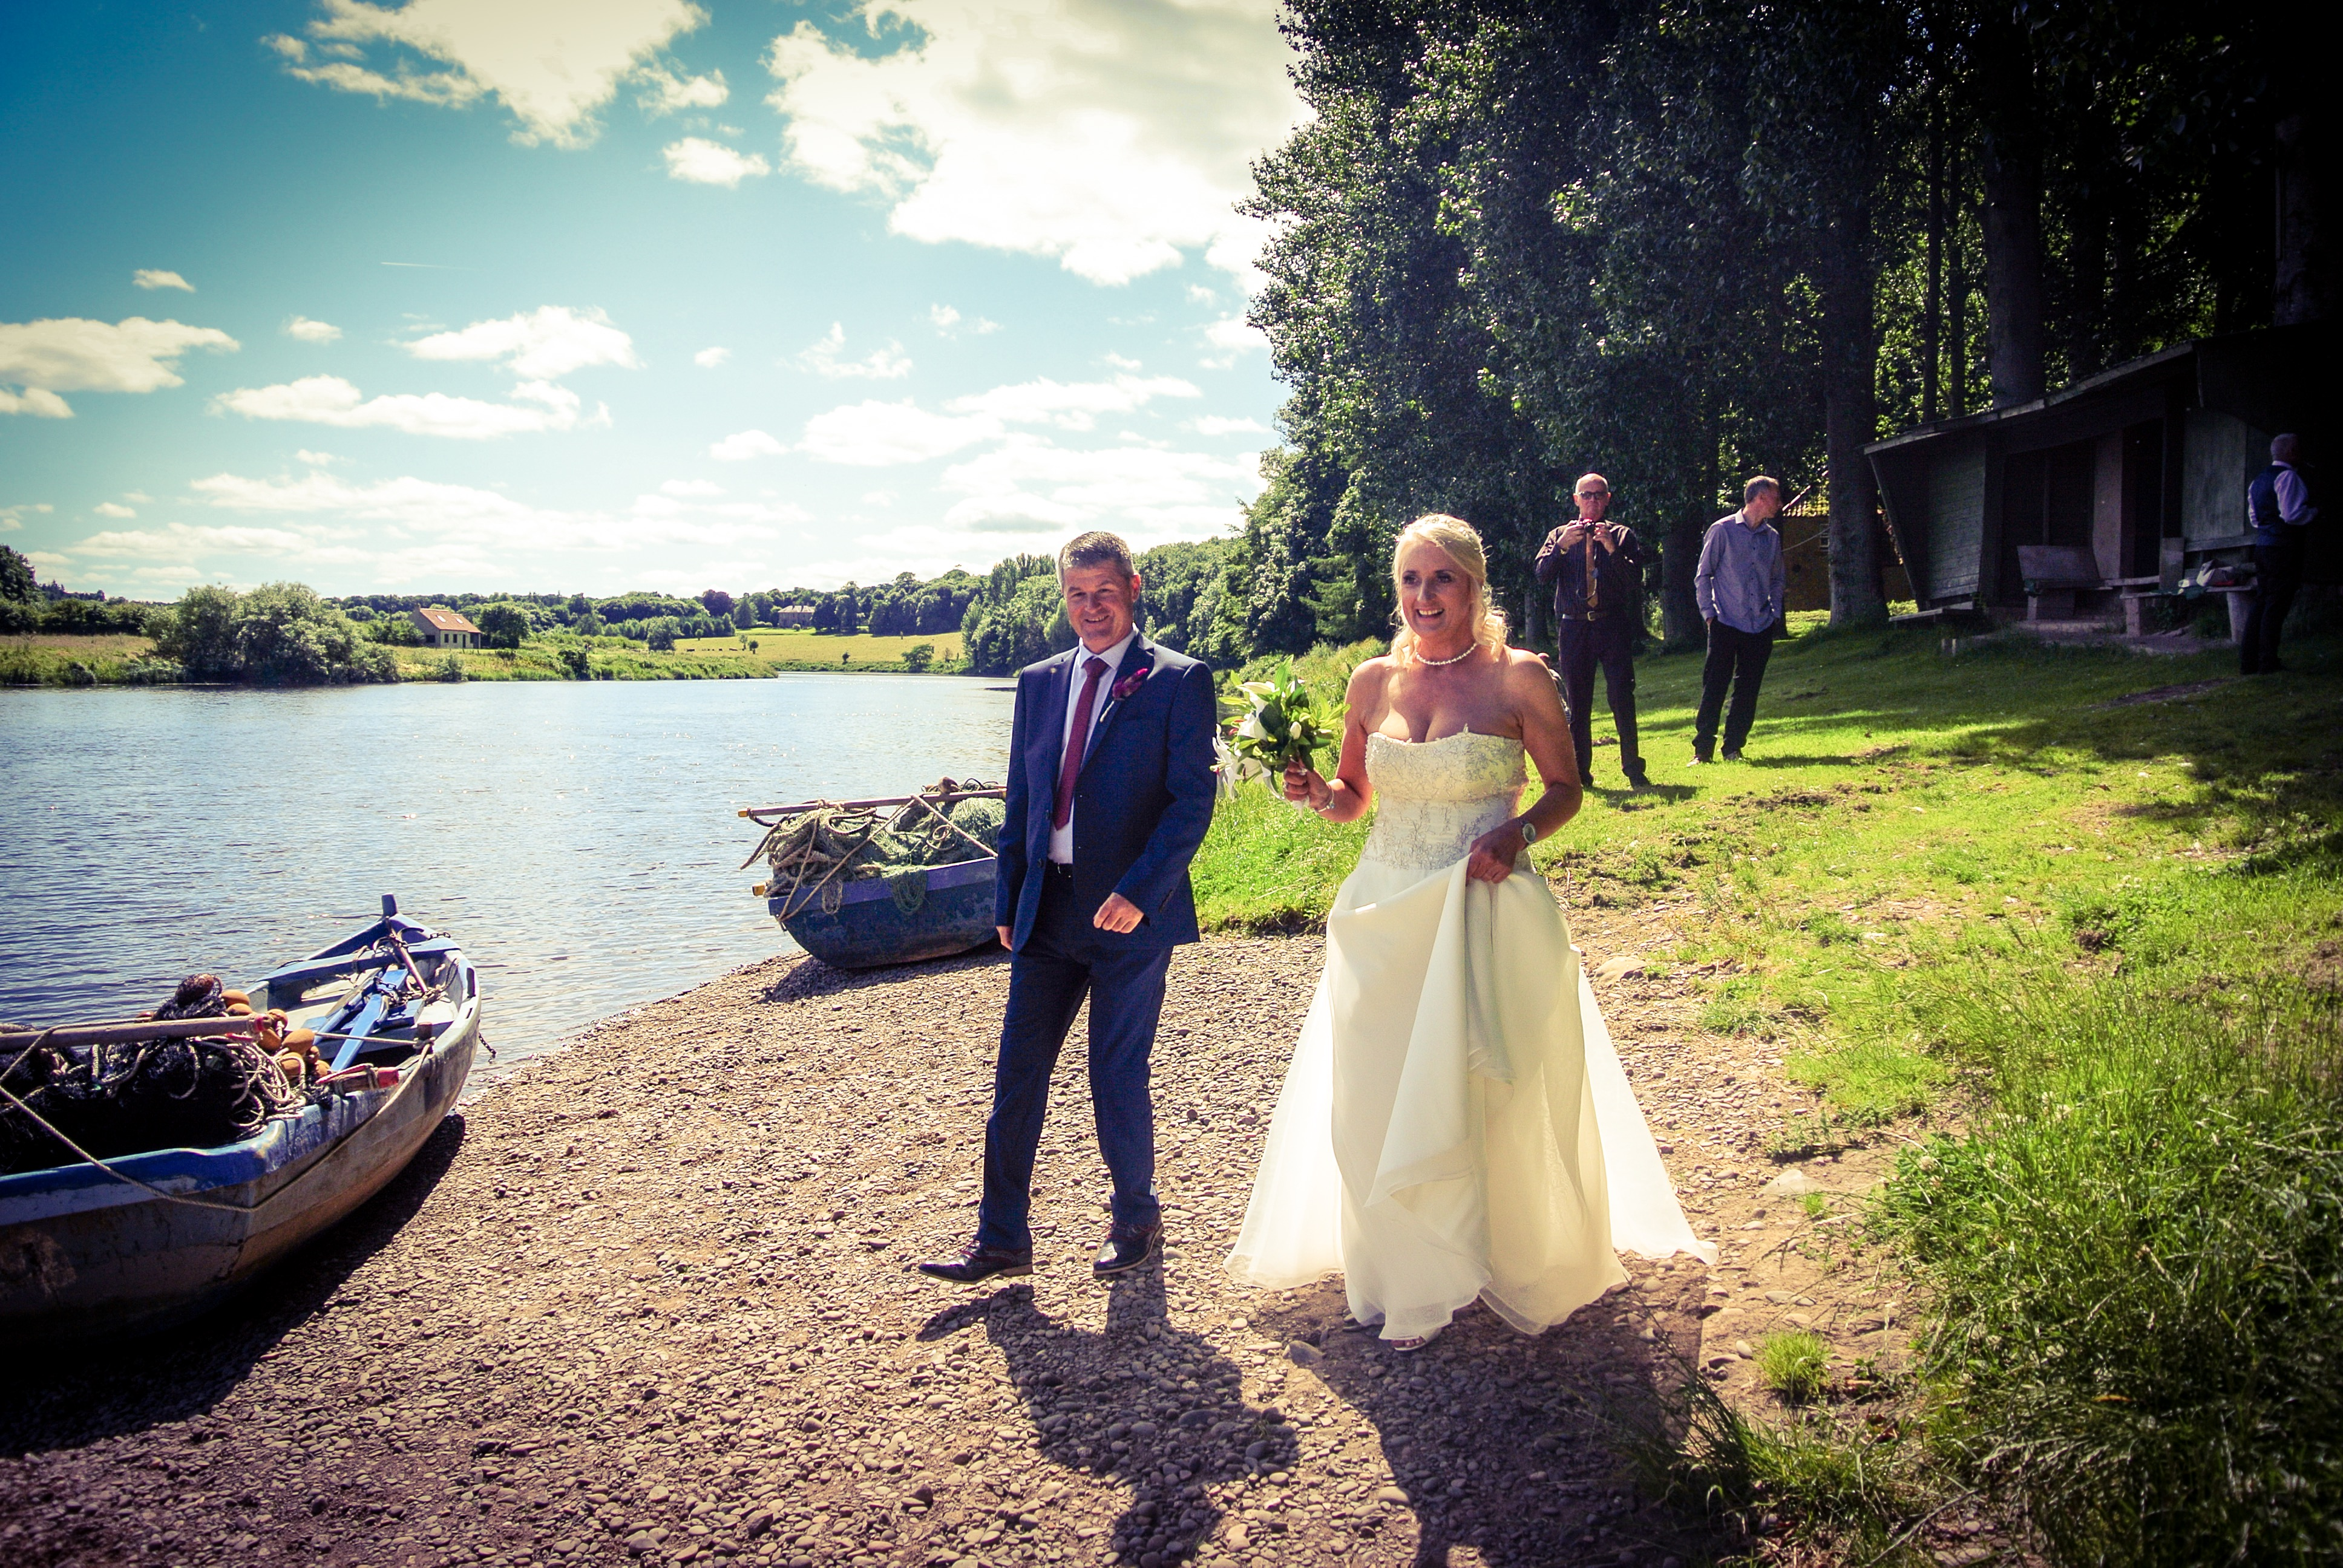 Wedding venue hire at paxton house scottish borders our first river ceremony has been featured in this lovely wedding blog epic elopement take a look and find out what we have to offer here at paxton house junglespirit Image collections